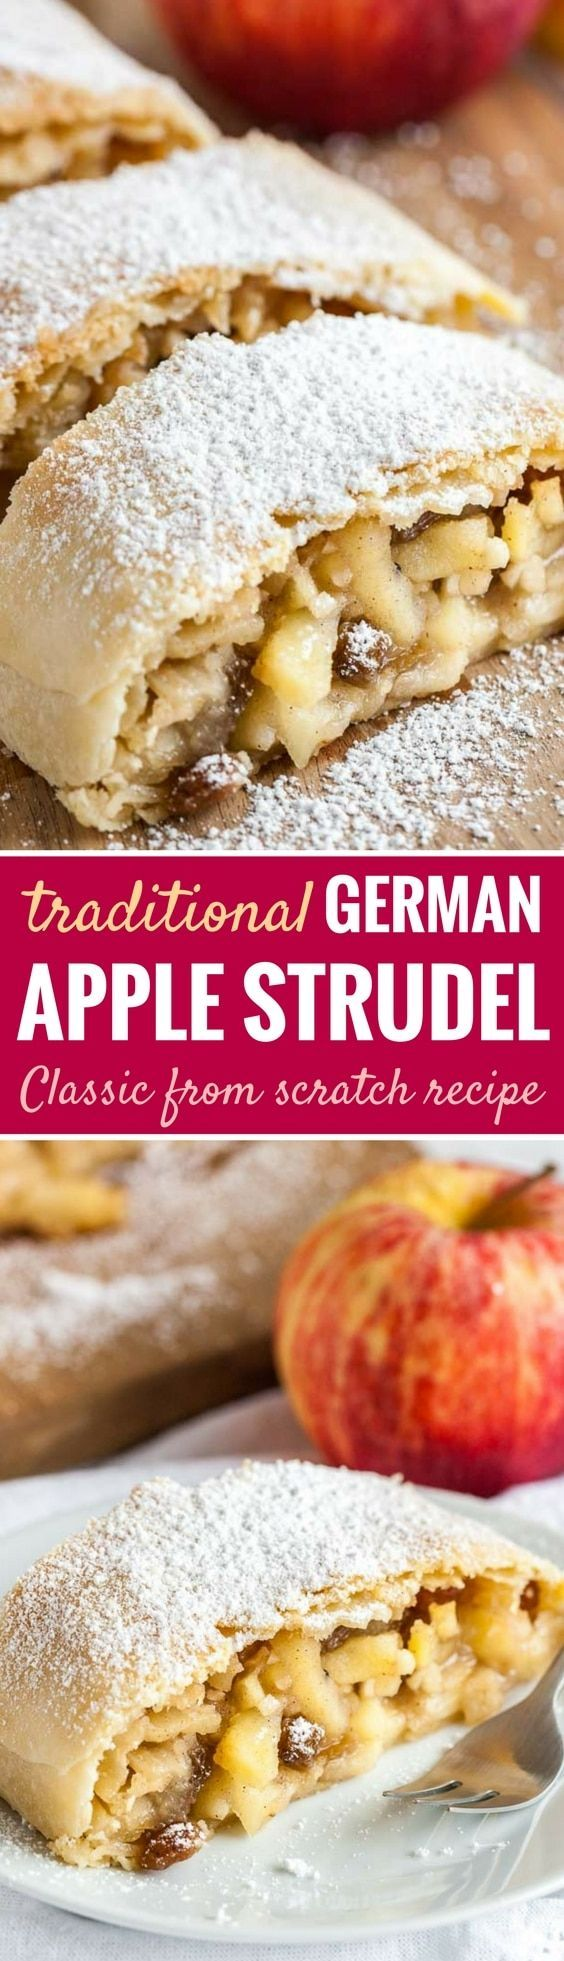 Apple Strudel is much easier to make from scratch than you think! With its flaky crust and a spiced apple filling.